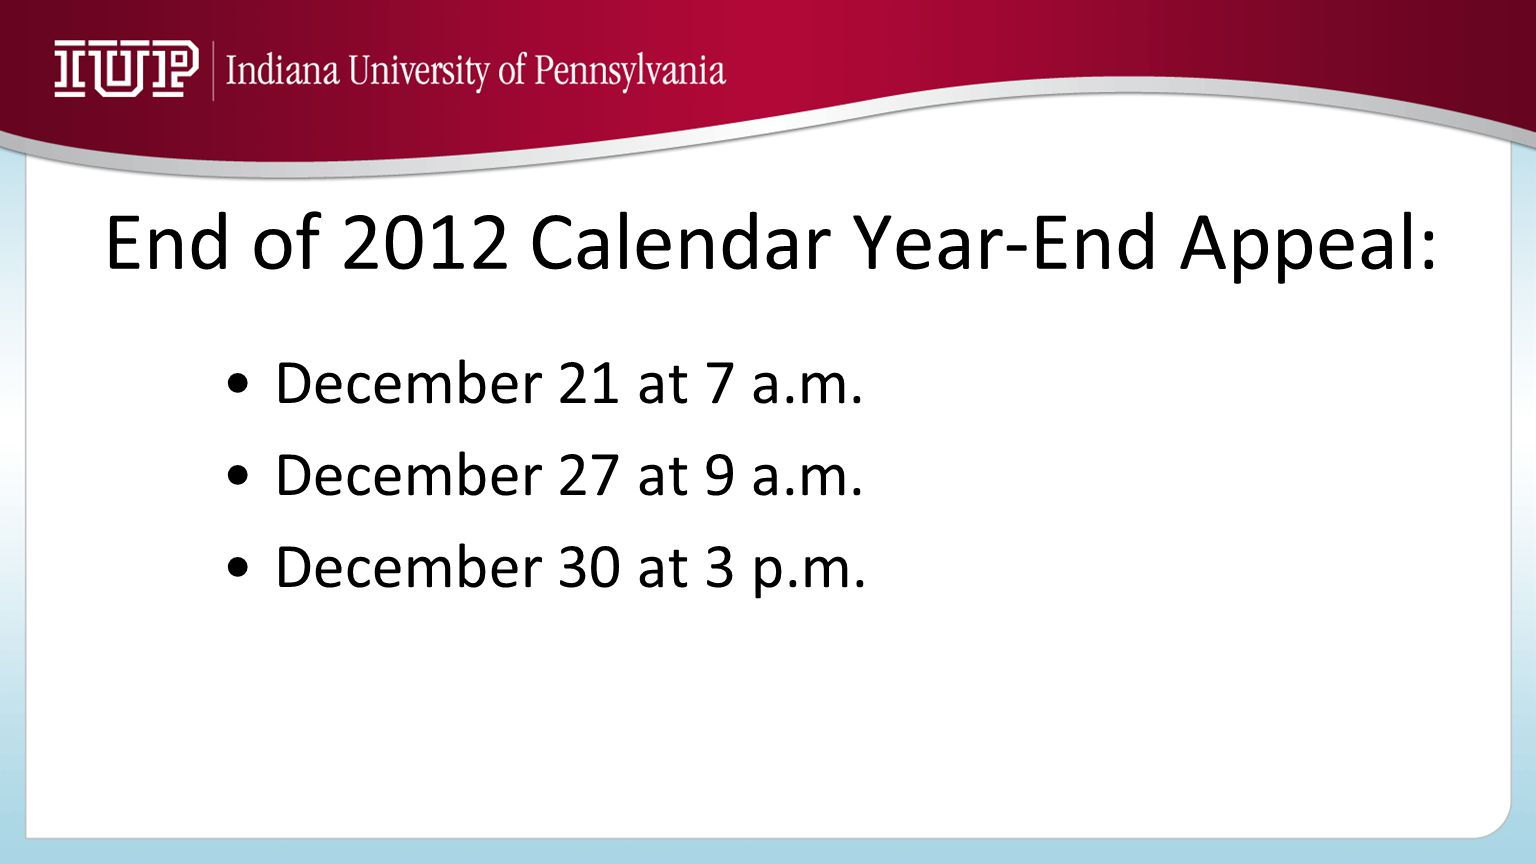 End of 2012 Calendar Year-End Appeal: December 21 at 7 a.m.